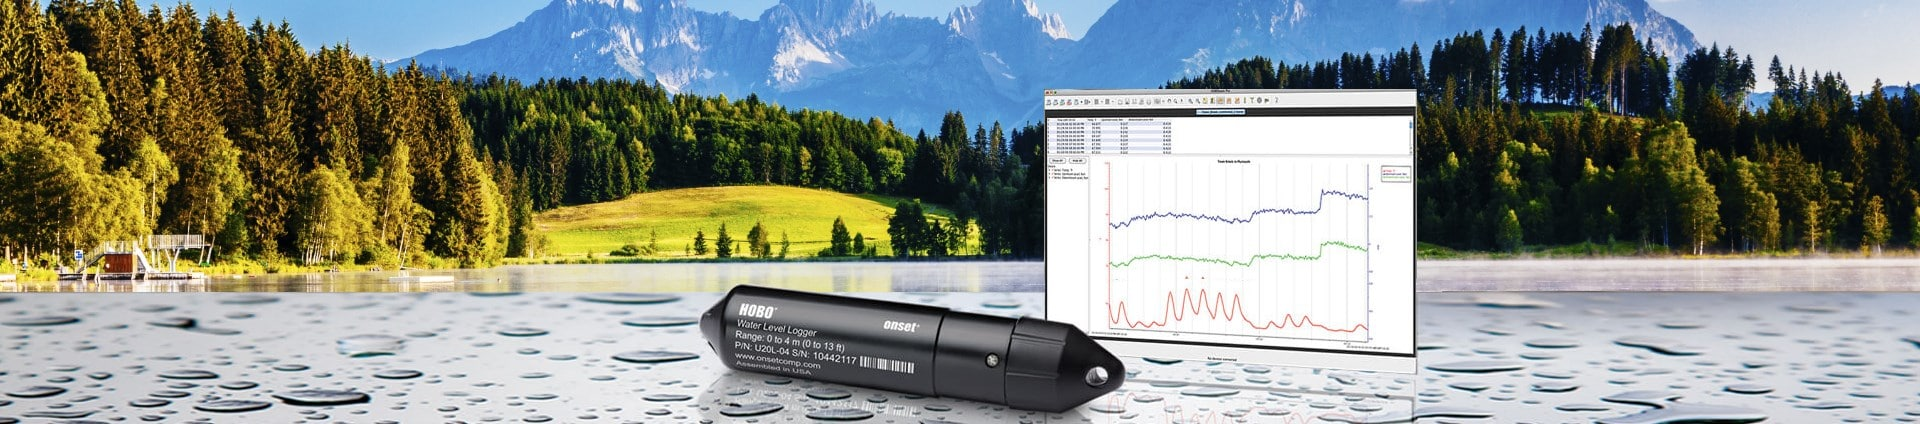 software watel level data logger